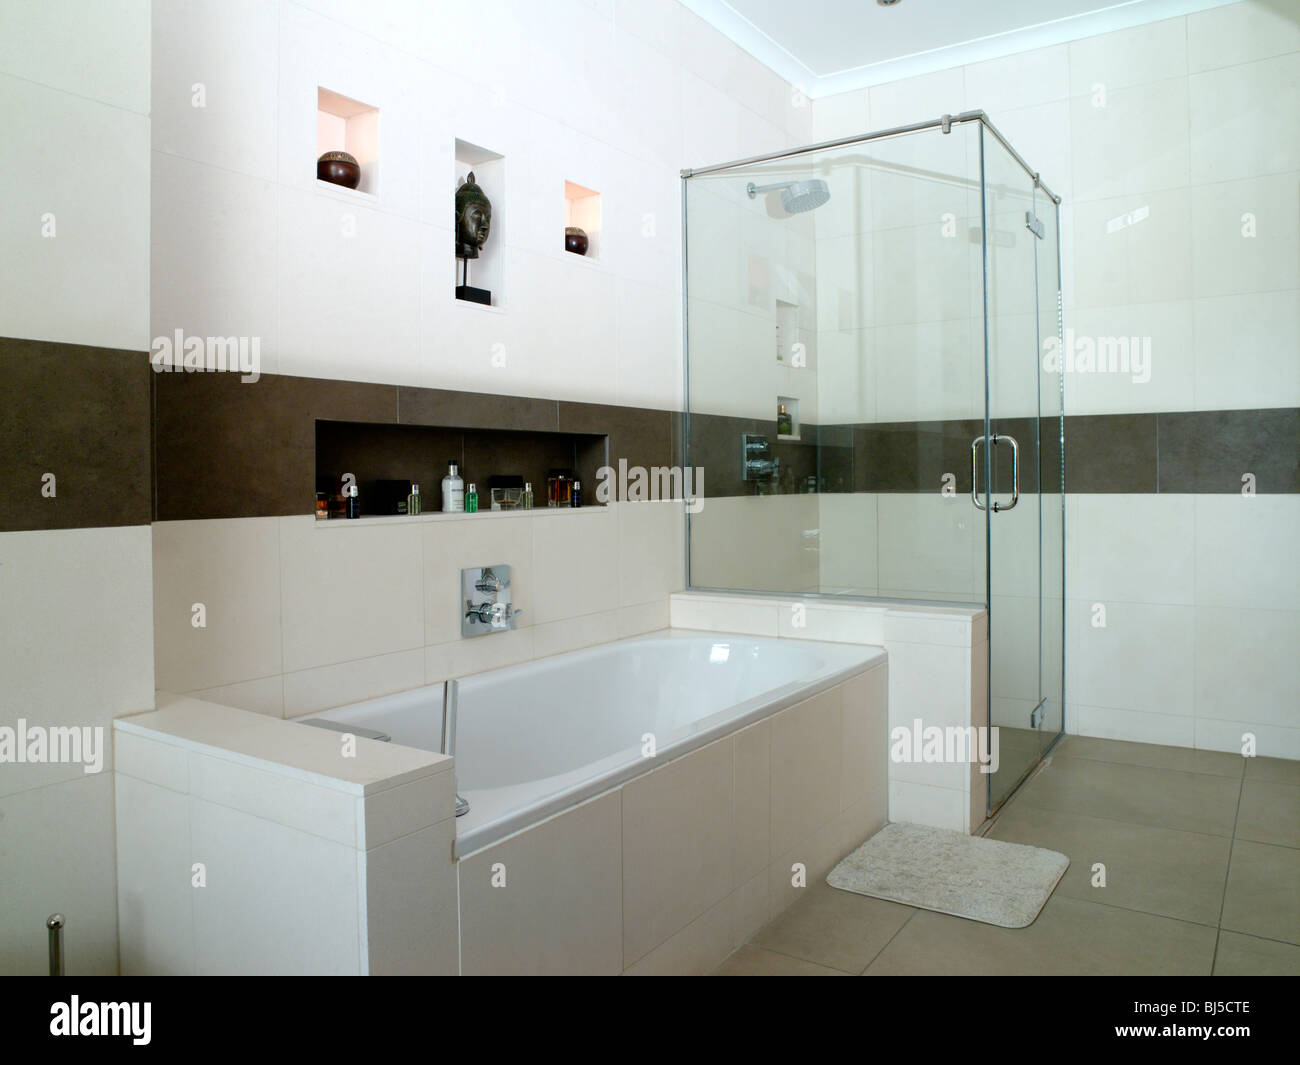 Modern Bathrooms Tiled In White And Brown Tileshis Hers Wash Basins Storagemirrorglass Shower Cubicle